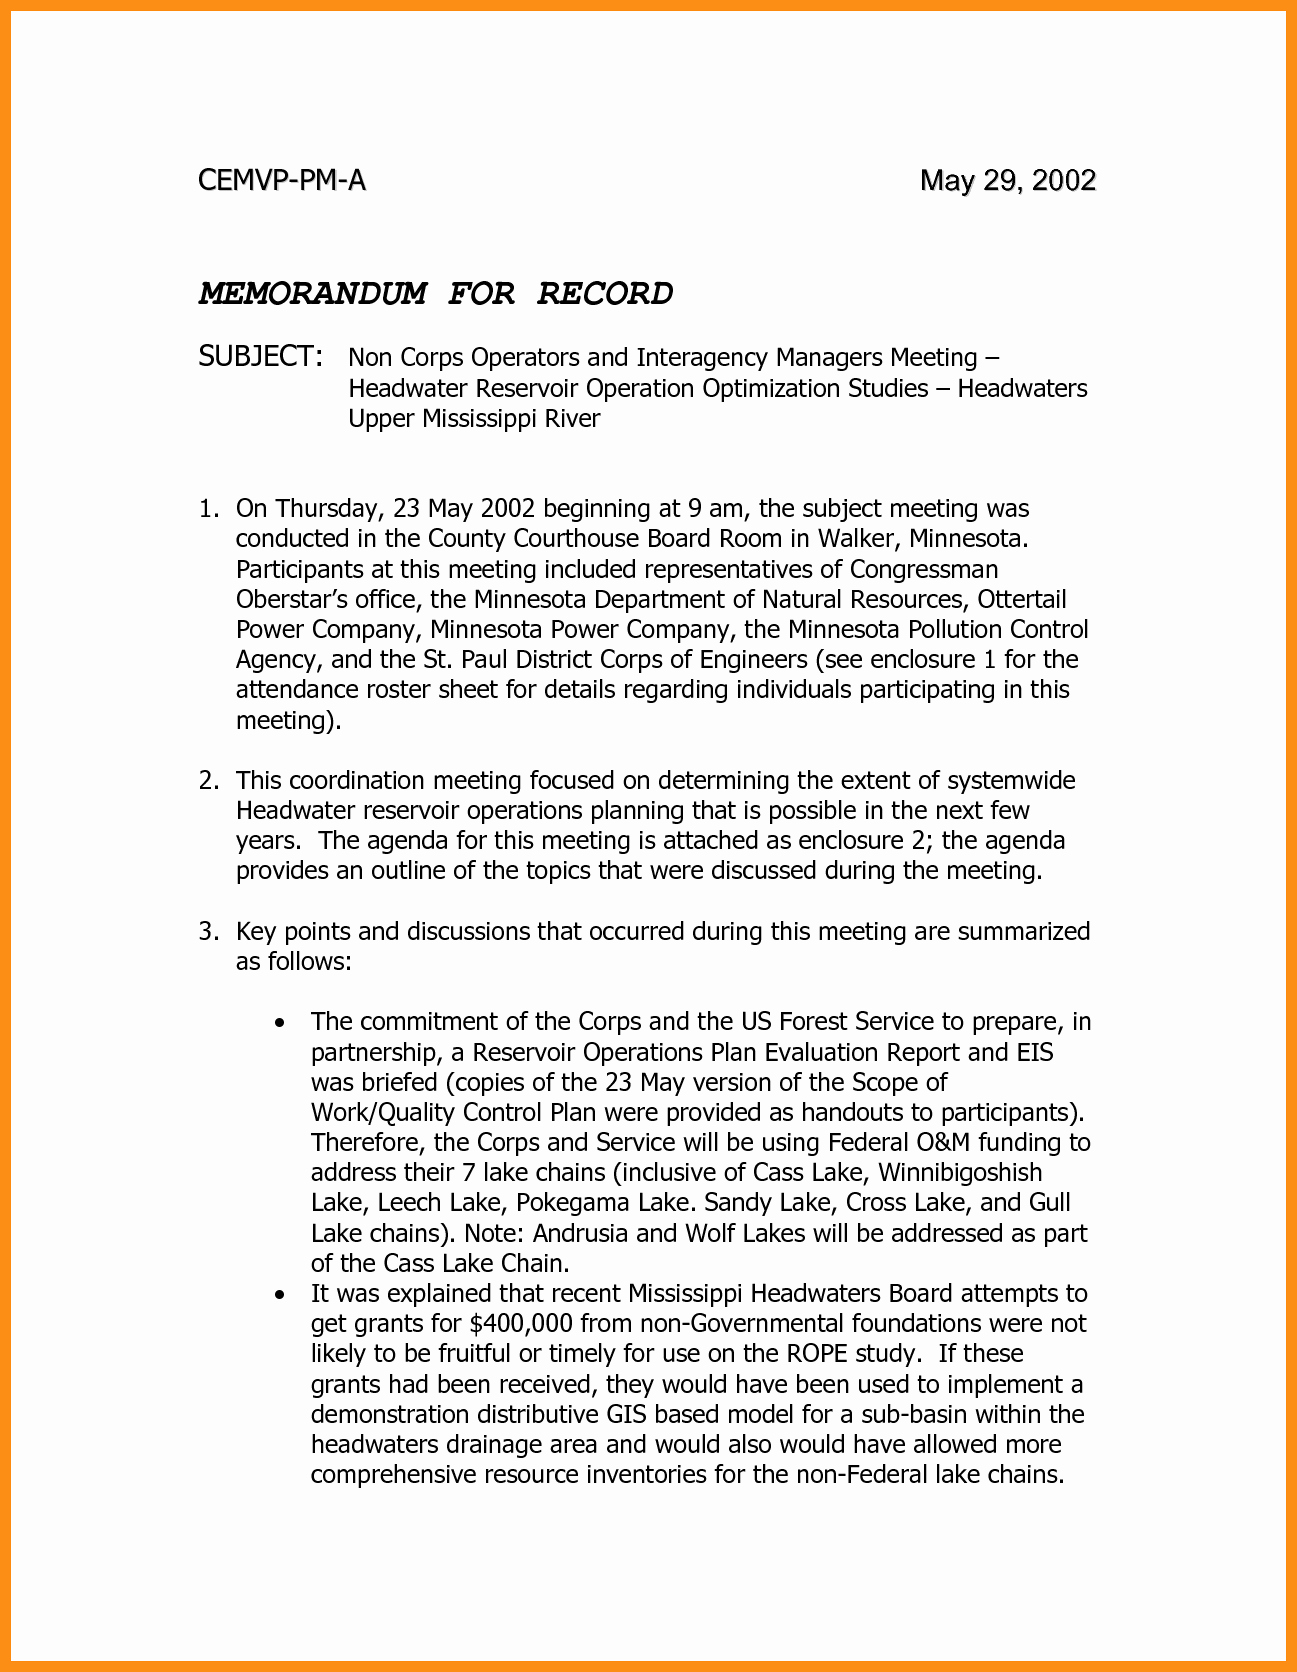 Memorandum Of Record Template Elegant 7 8 Memorandum for Record Army Example Wlc